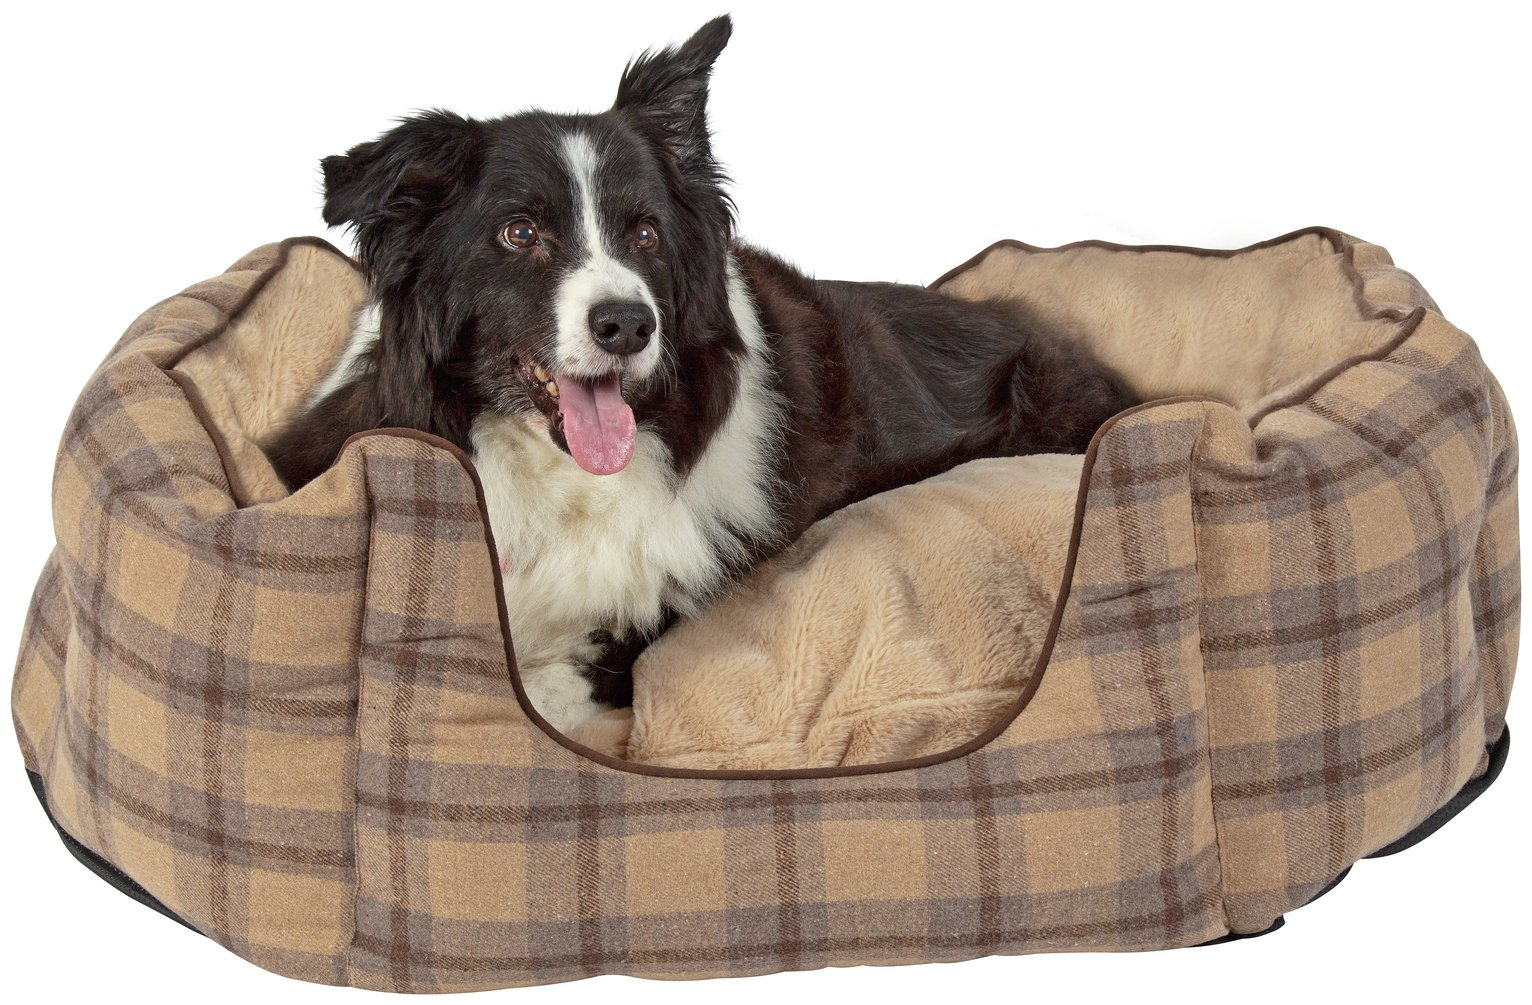 Pineham Memory Foam Oval Pet Bed - Large